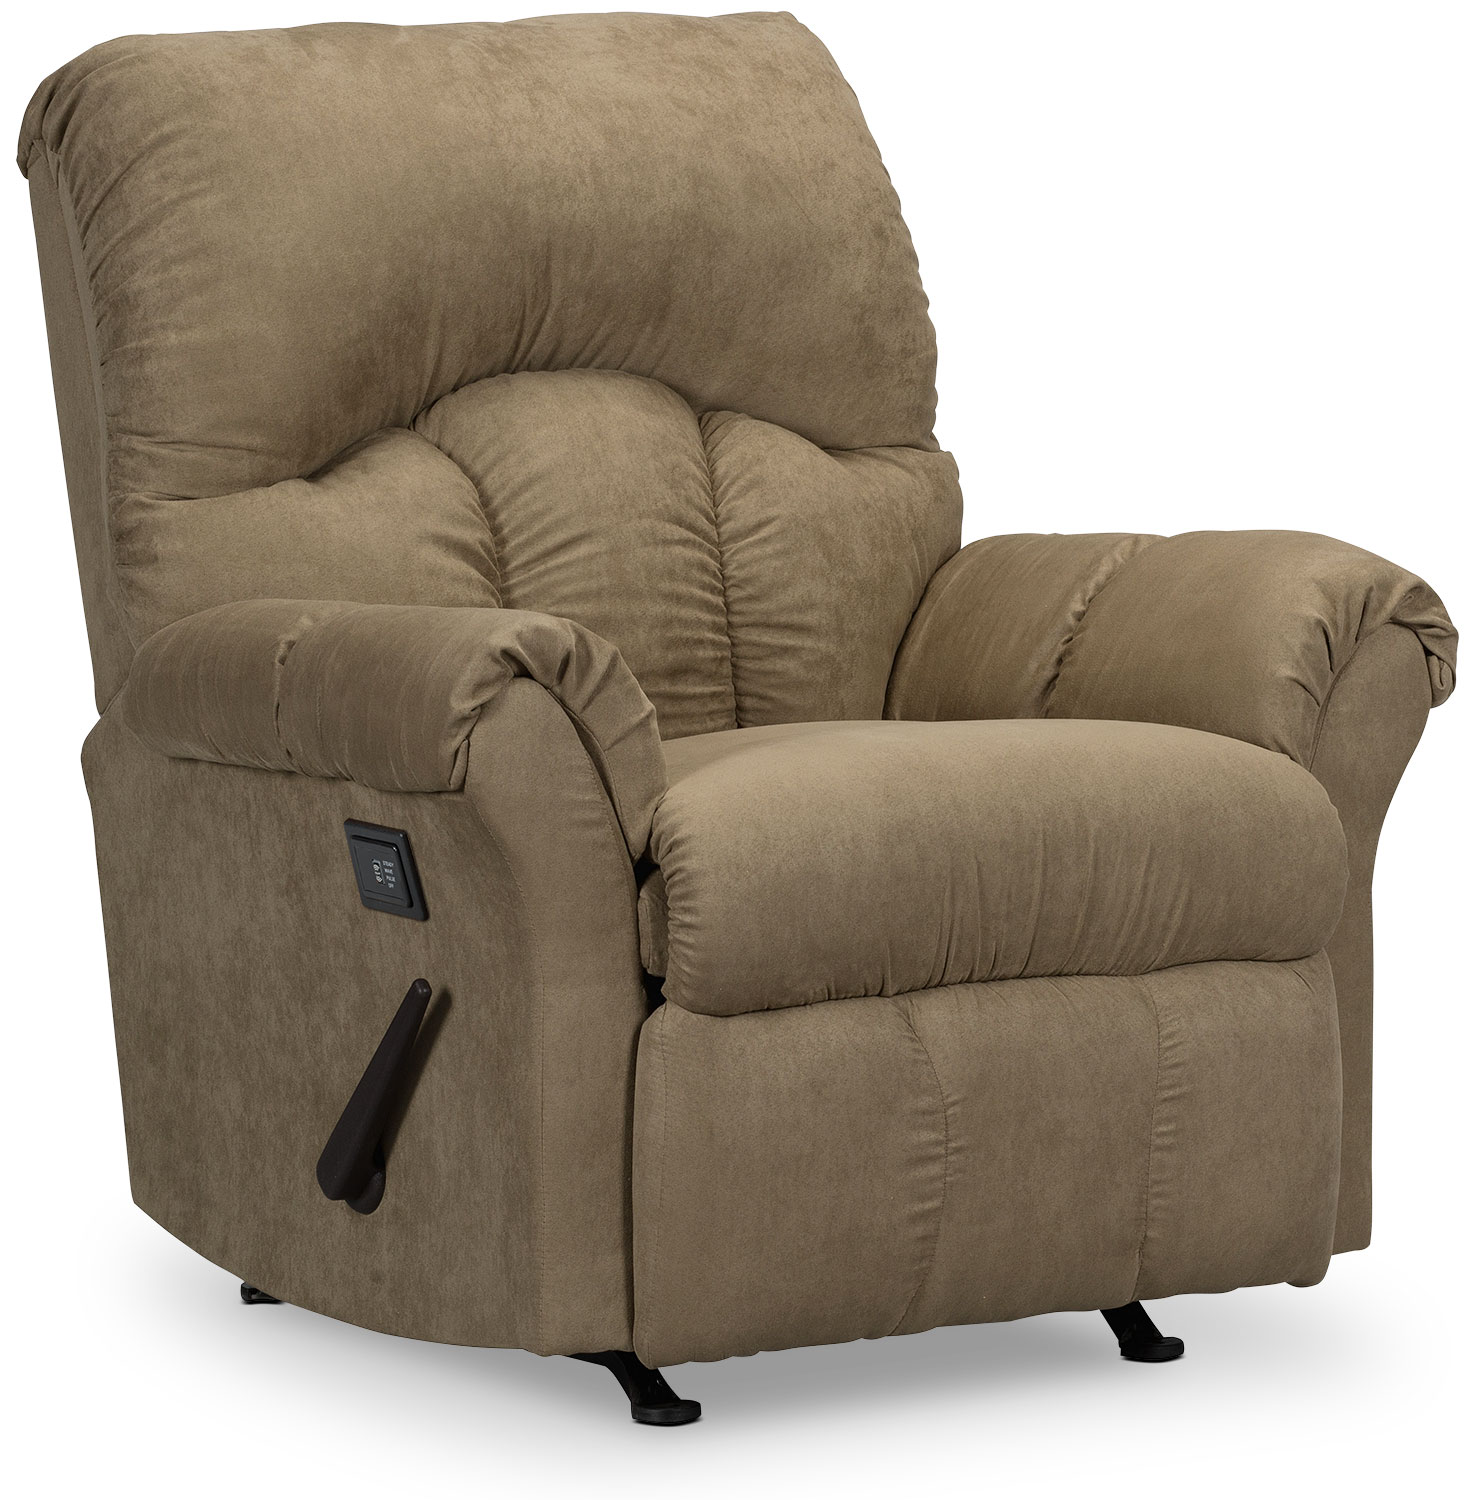 Designed2B Recliner 6734 Microsuede Massage Recliner - Mocha